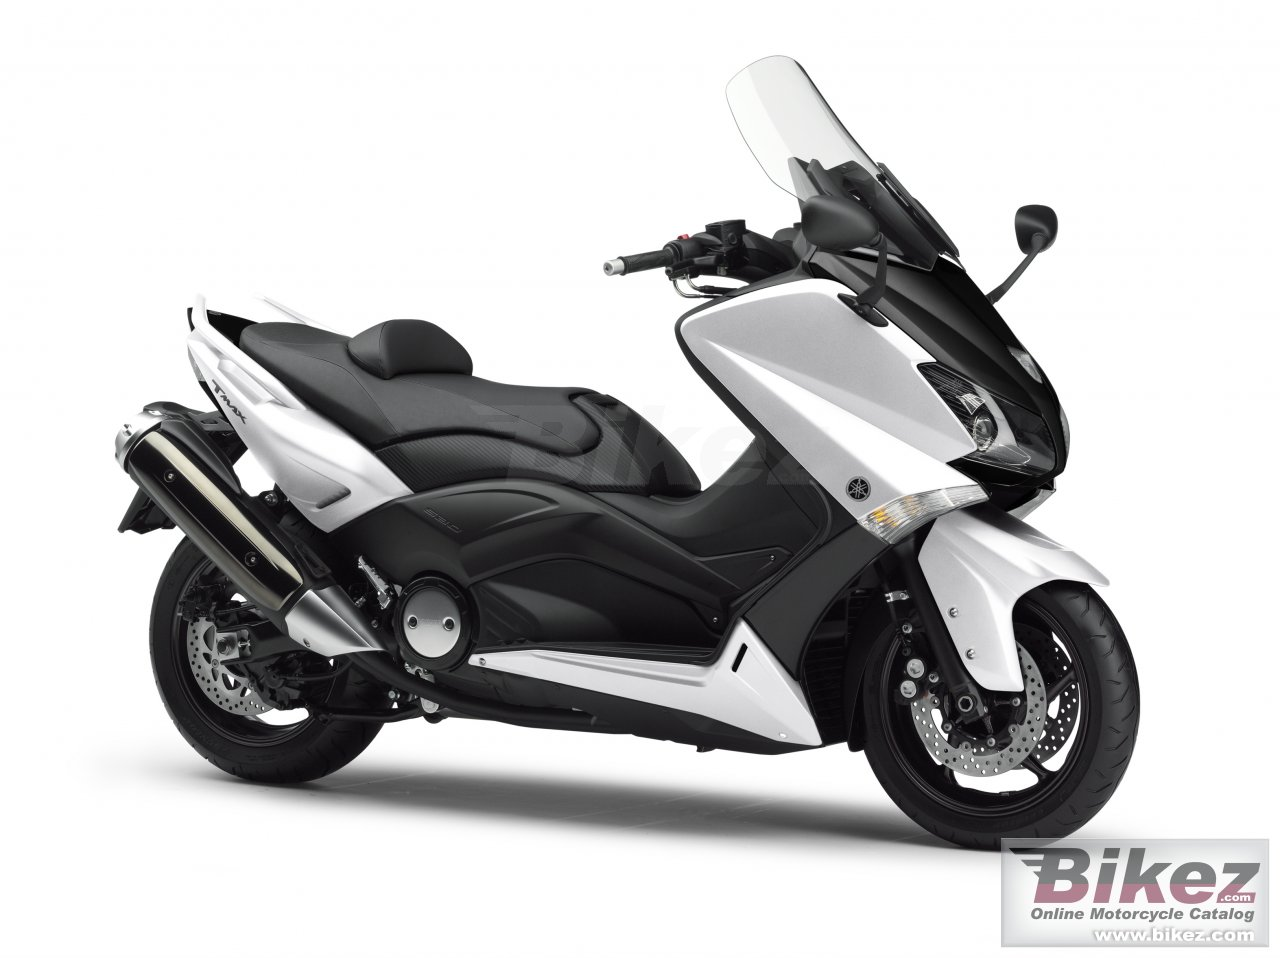 Big Yamaha tmax picture and wallpaper from Bikez.com